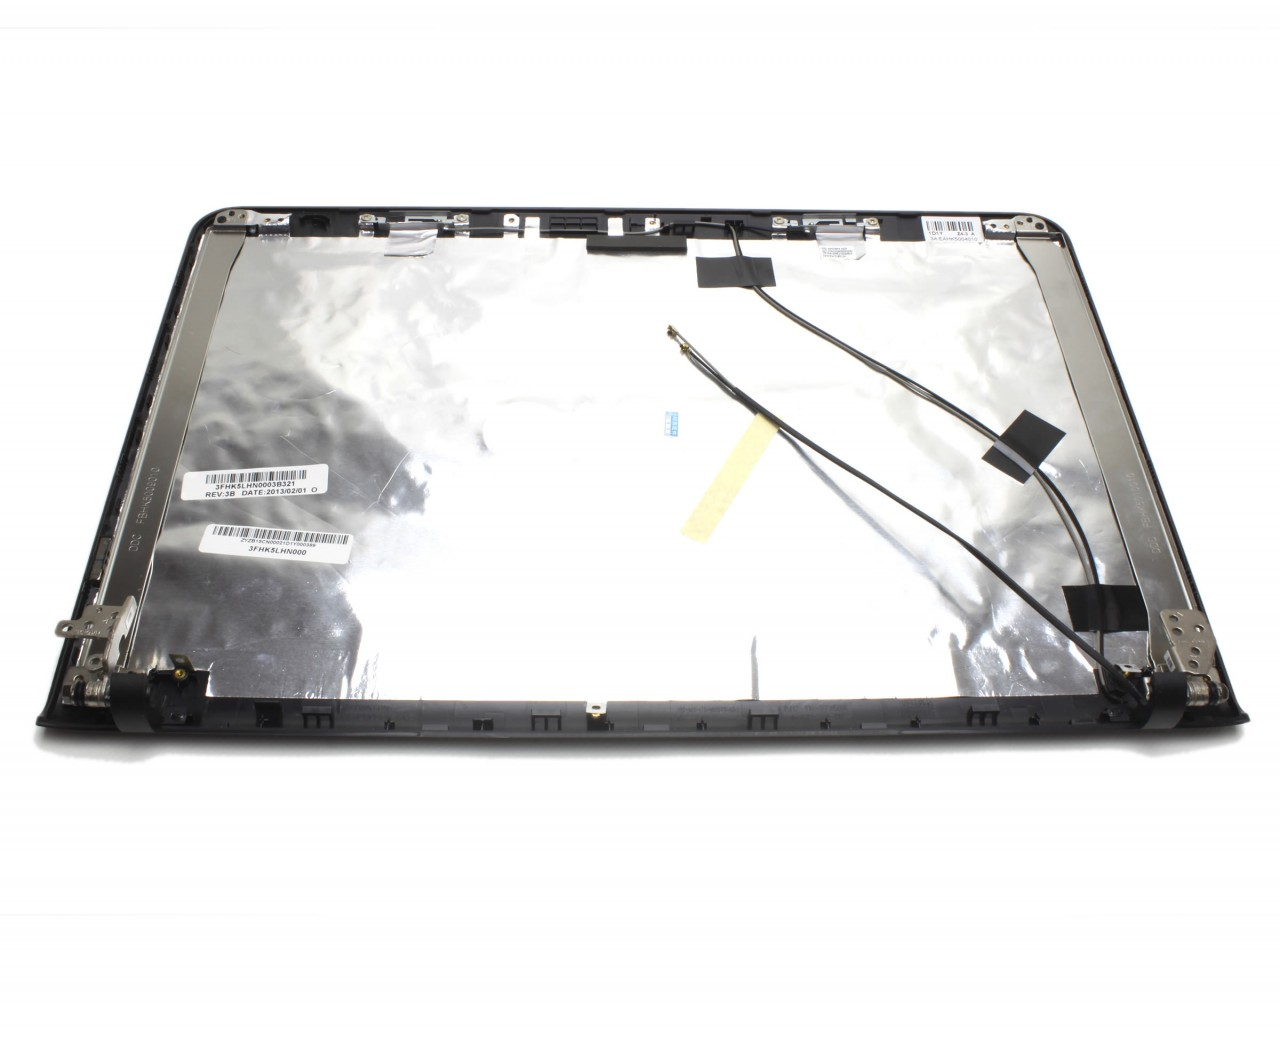 Capac Display BackCover Sony Vaio SVE15 Carcasa Display Neagra imagine powerlaptop.ro 2021